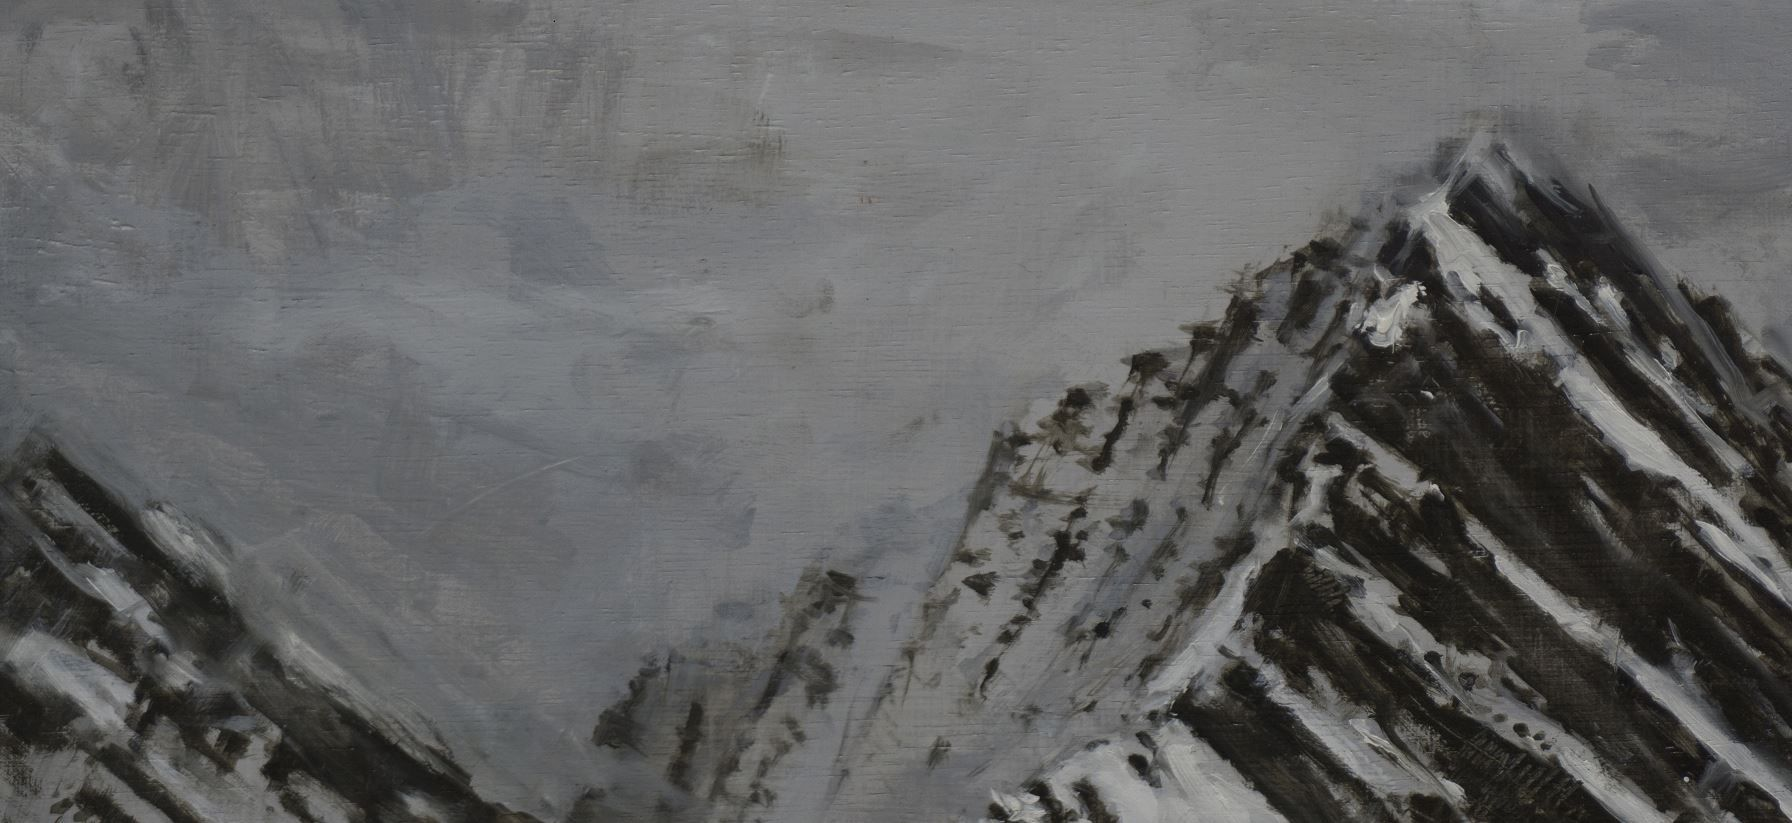 Pyrenees Study, Snow collection,Calo  Carratalá,Contemporary painting, detail 2